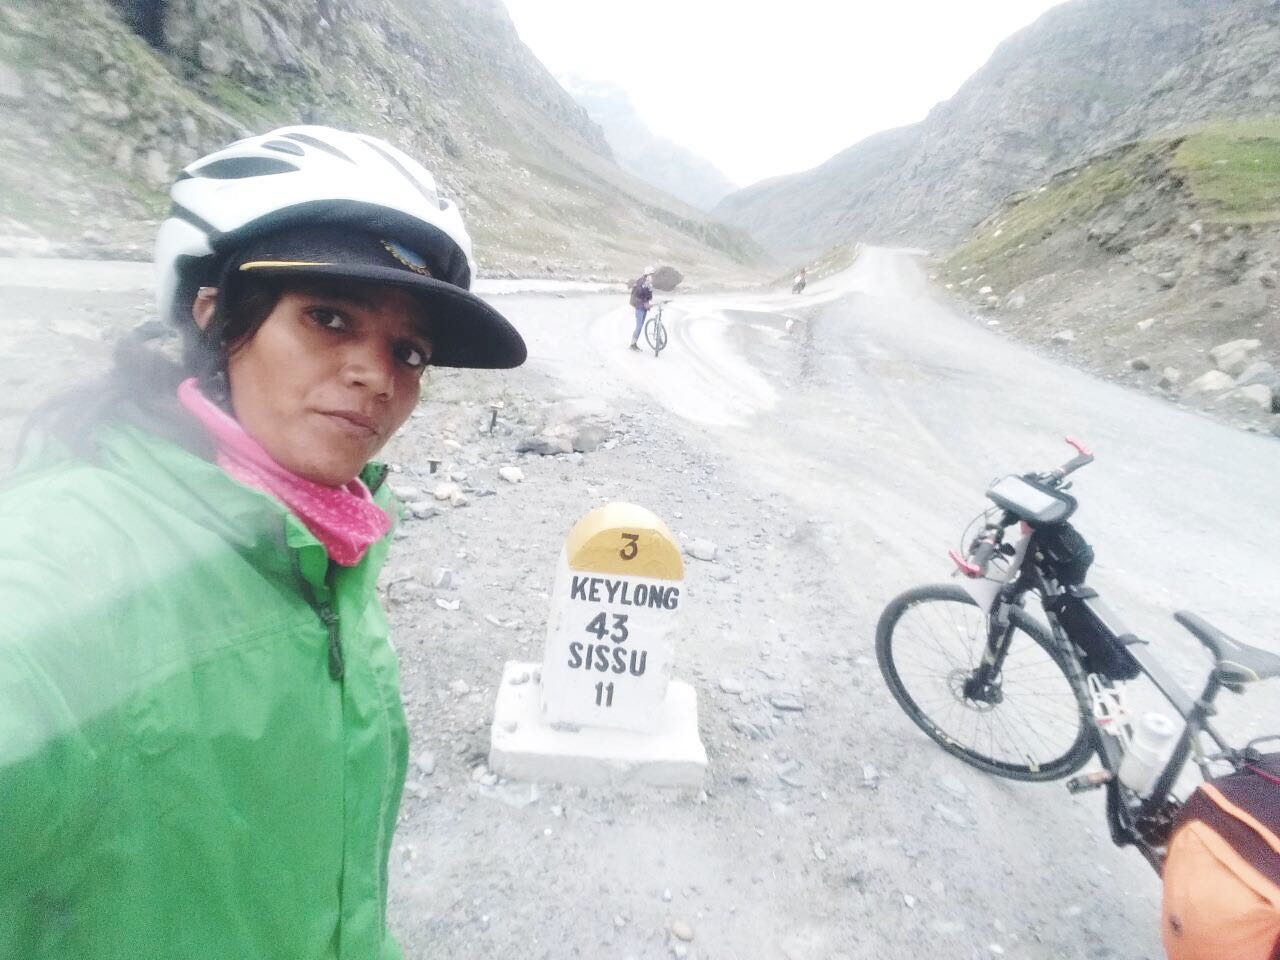 Bad road conditions- challenging for Sunitas bike